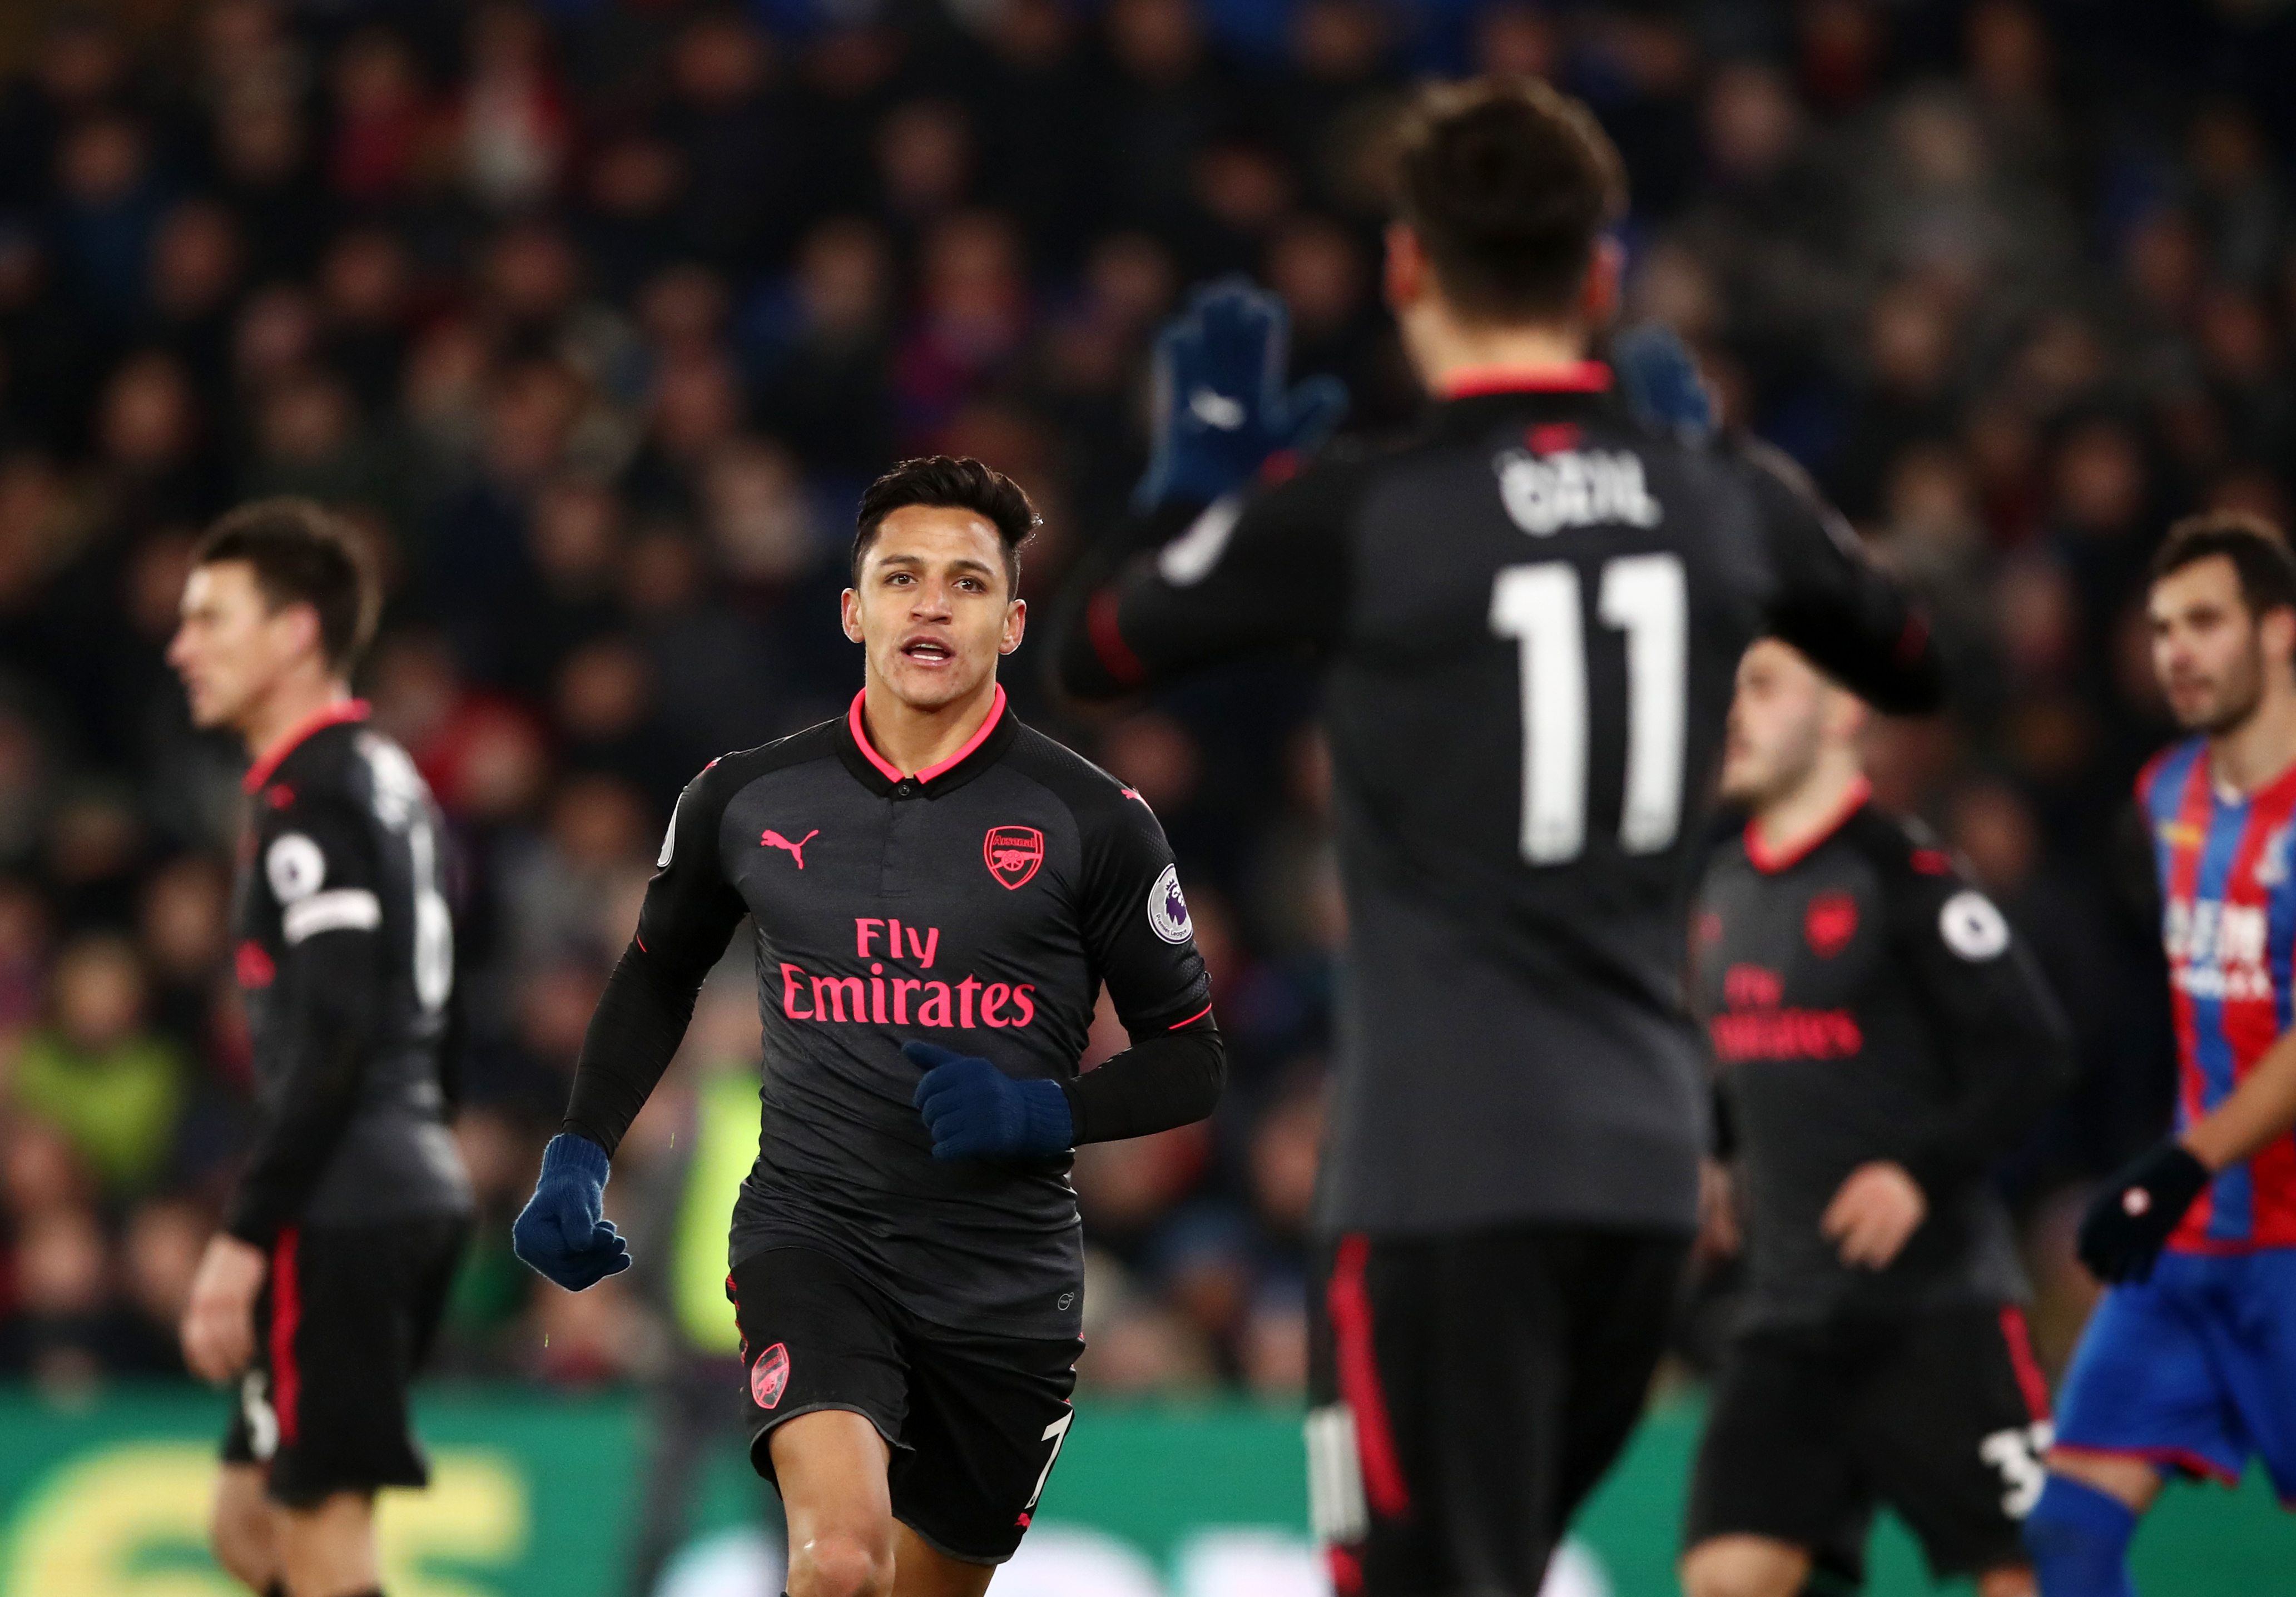 Thierry Henry spotted something worrying about Sanchez's celebration v Palace